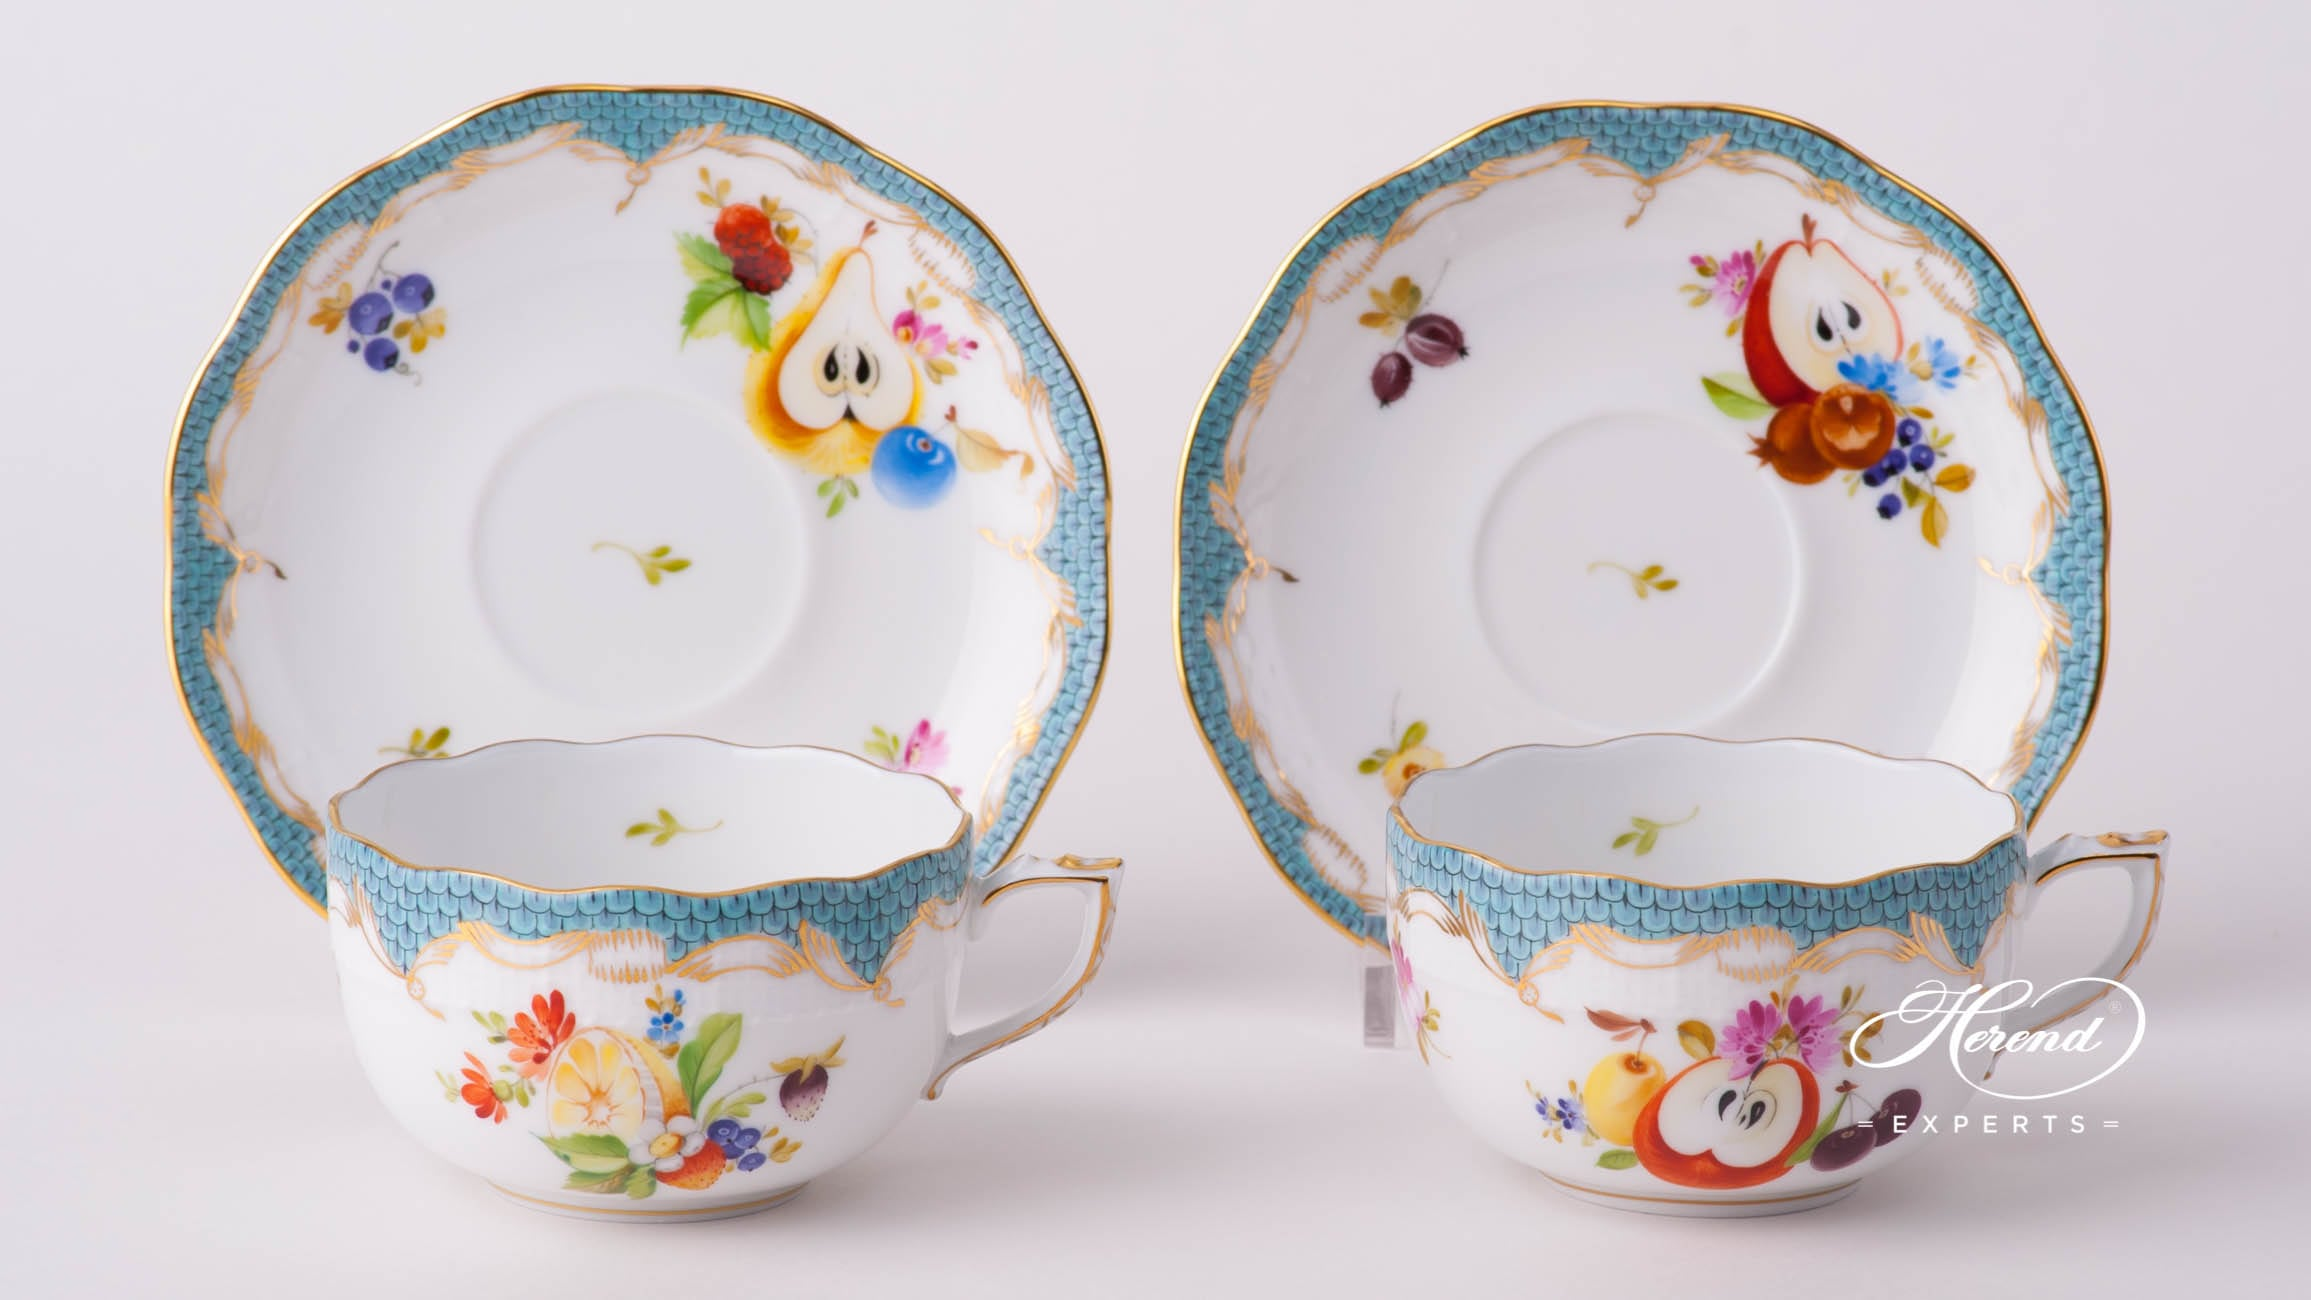 Tea Cup with Saucer 724-0-00 CFR-ET Fruits with Turquoise Fish Scale design. Herend fine china tableware. Hand painted